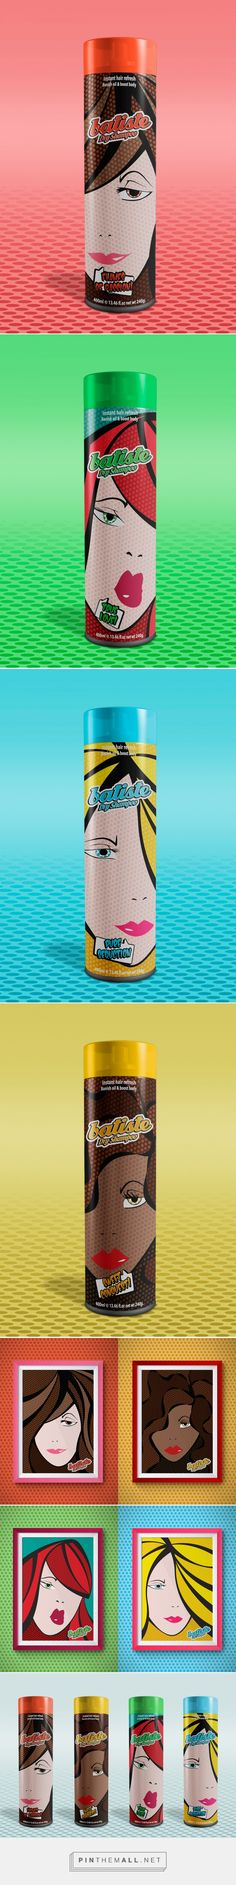 """Batiste Dry Shampoo on Behance by Felipe Mesquita curated by Packaging Diva PD. Label packaging fragrances are inspired in Pop Art for this brand """"Batiste"""". Developed for lessons of Miami Ad School."""